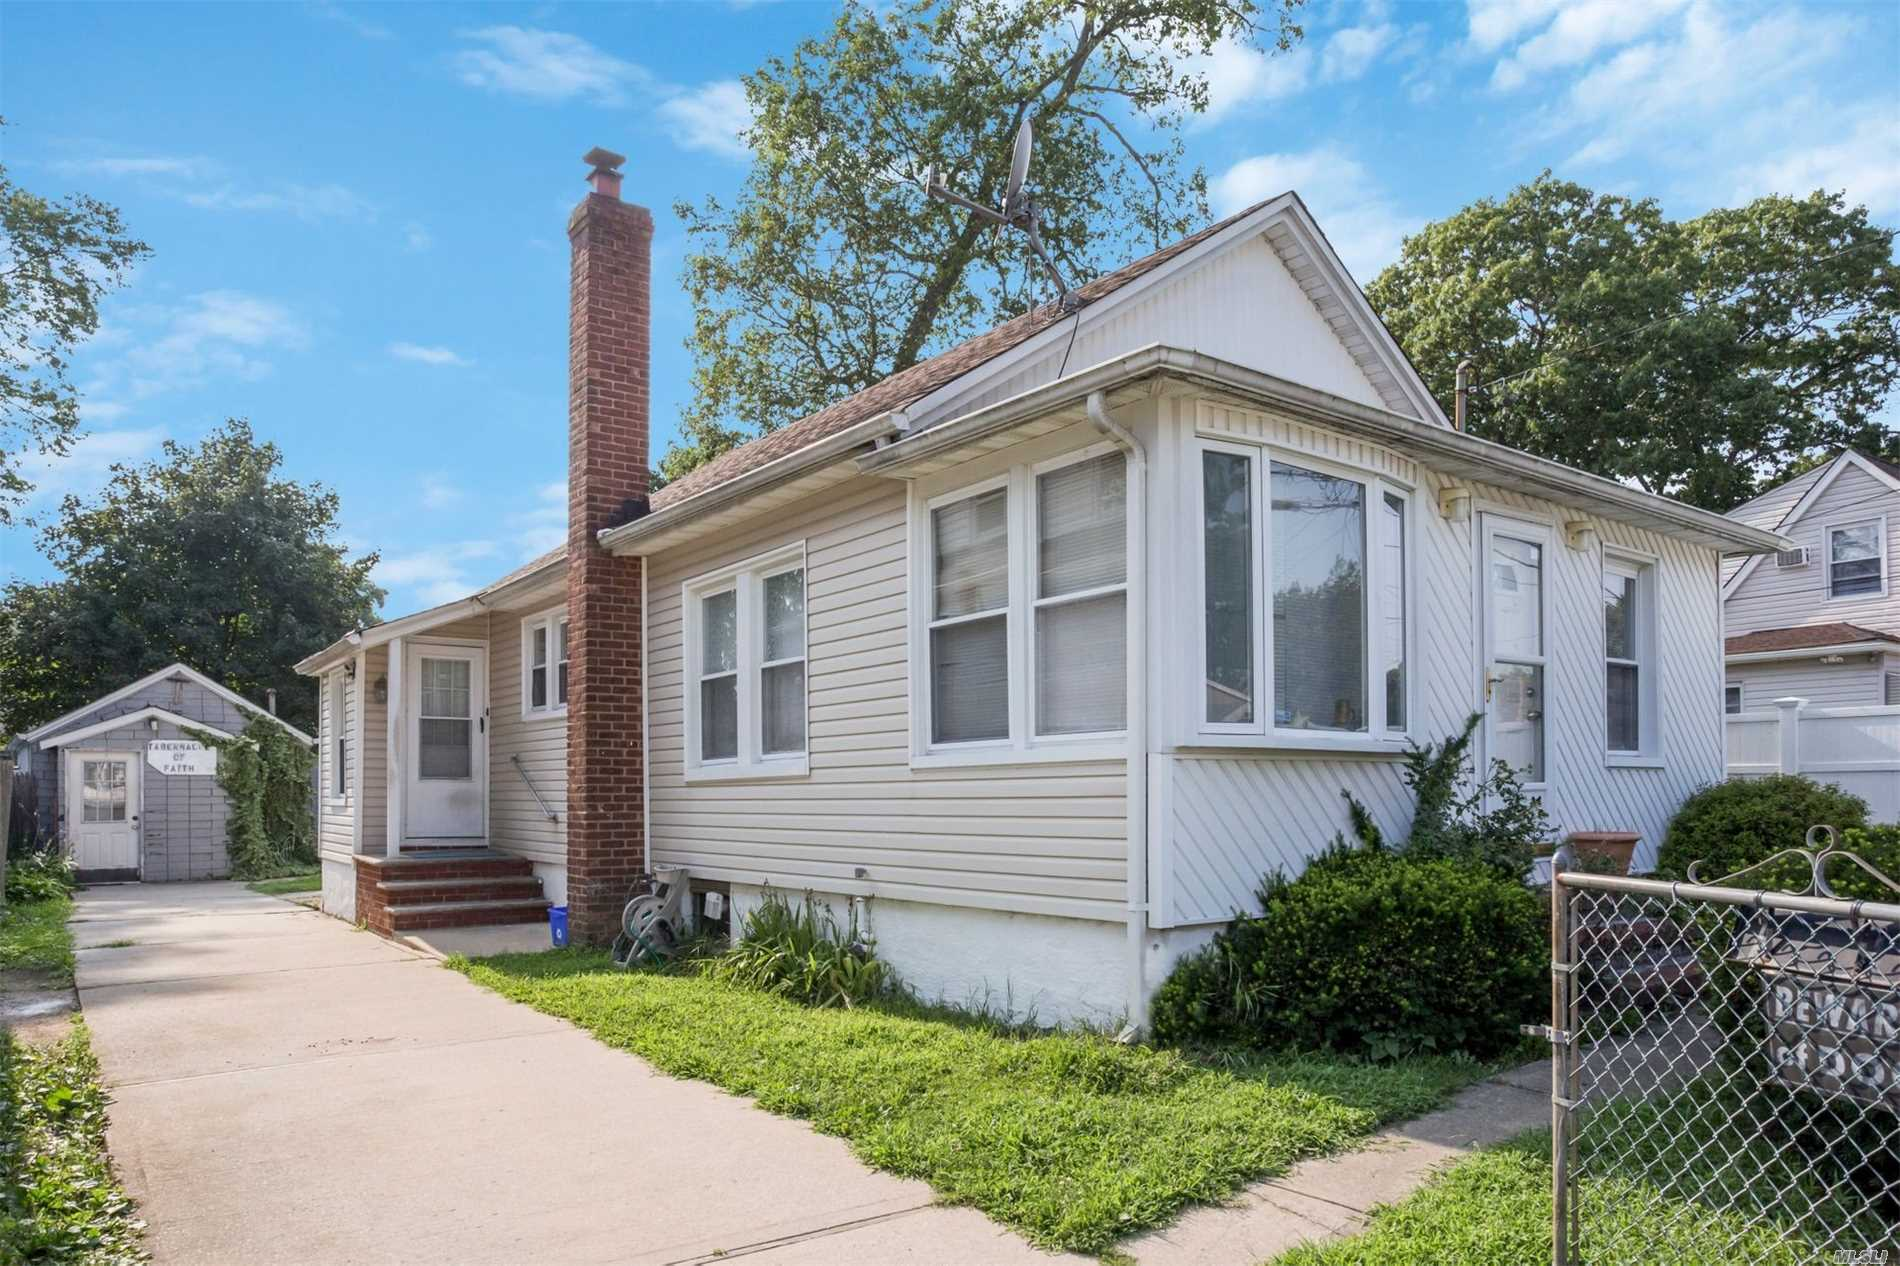 2 Bedroom 1 Bath Ranch With Large Backyard On Oversized Lot Being Sold As Is. Updates Include Heating System 2 Years Young And Younger Roof.